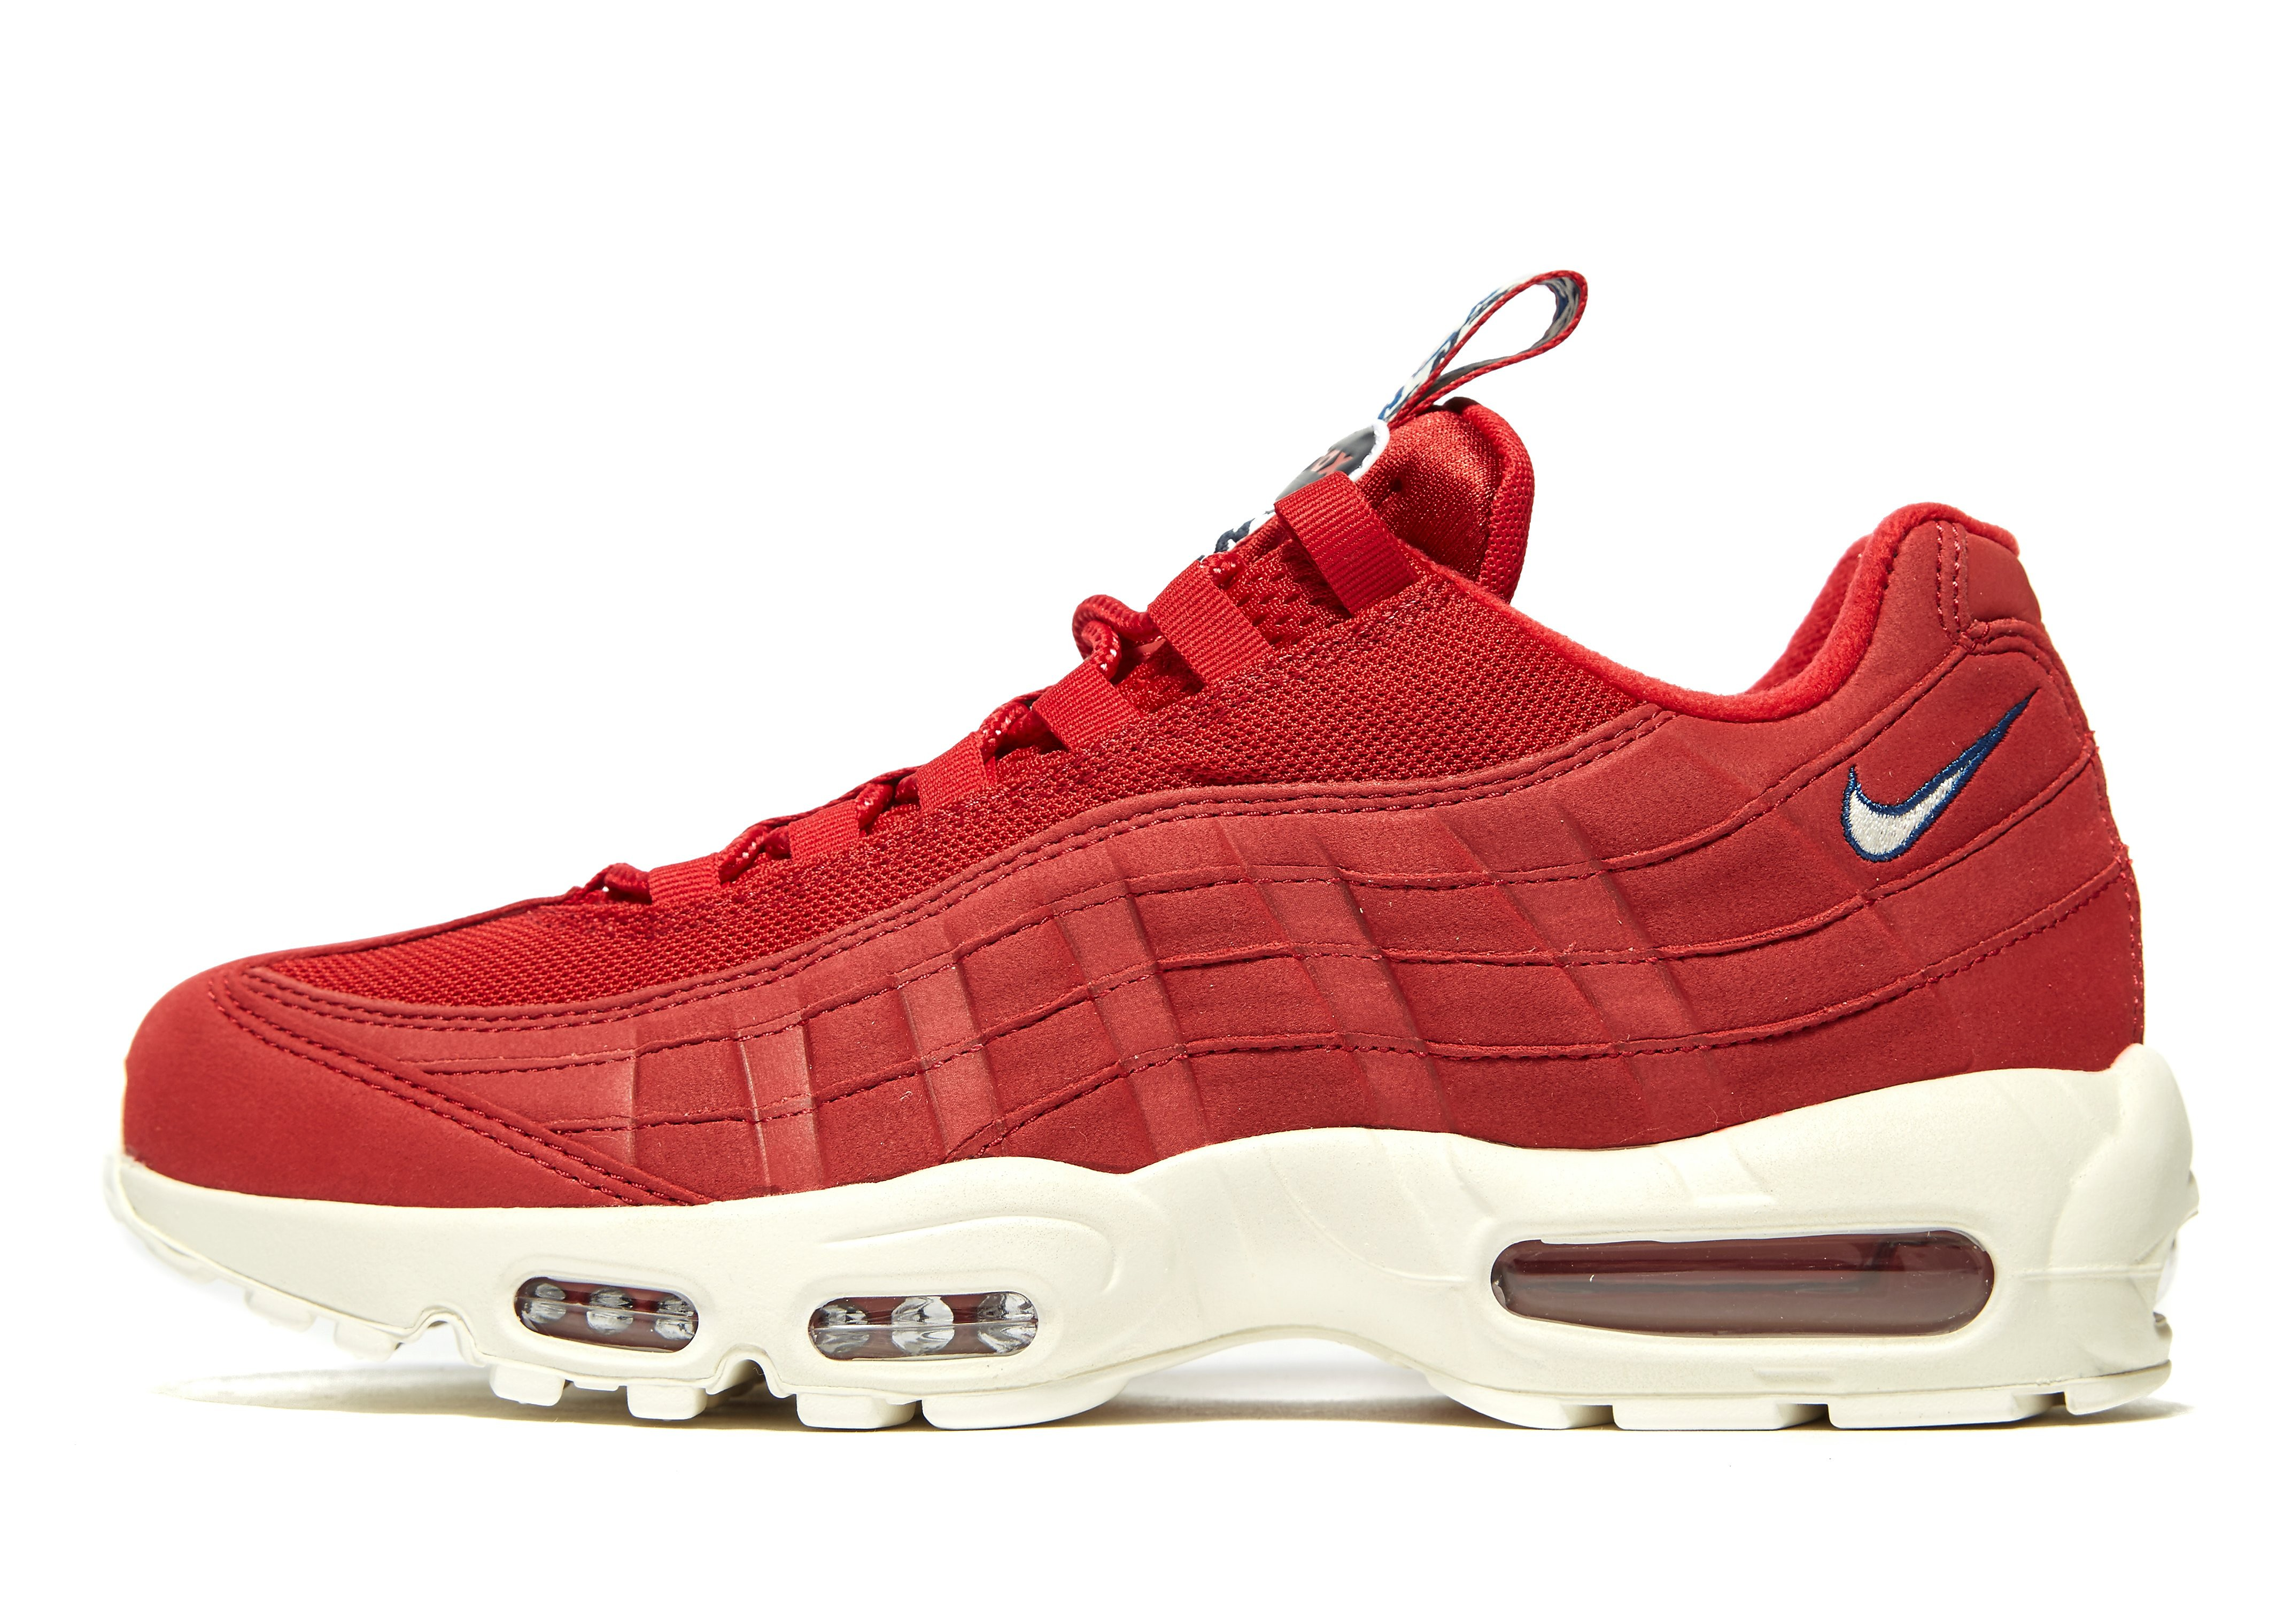 Nike Air Max 95 'Taped' Rot-Weiß